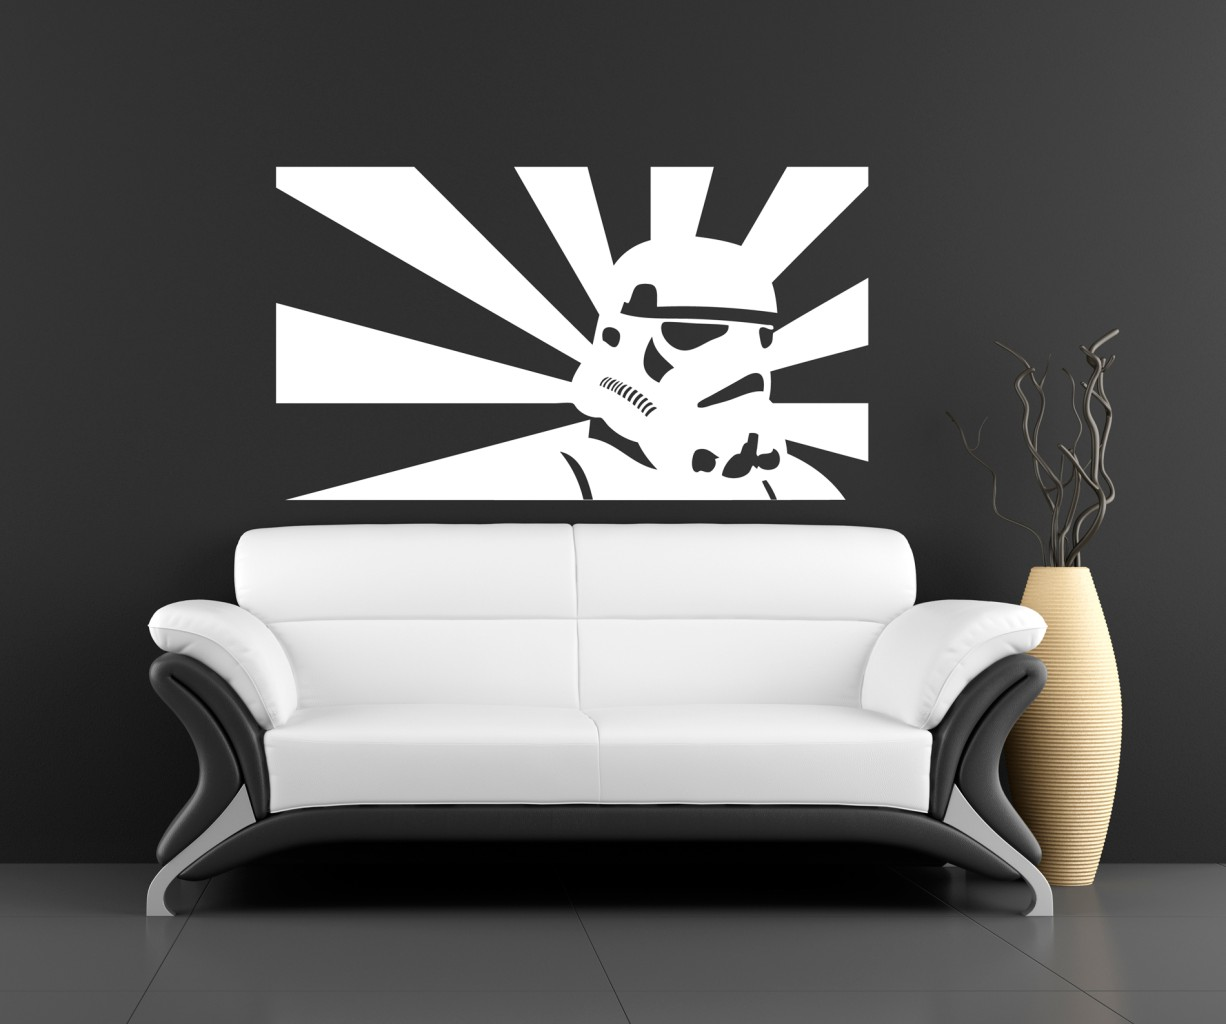 Star Wars Bedroom Ideas Themes 45 Best Star Wars Room Ideas For 2017